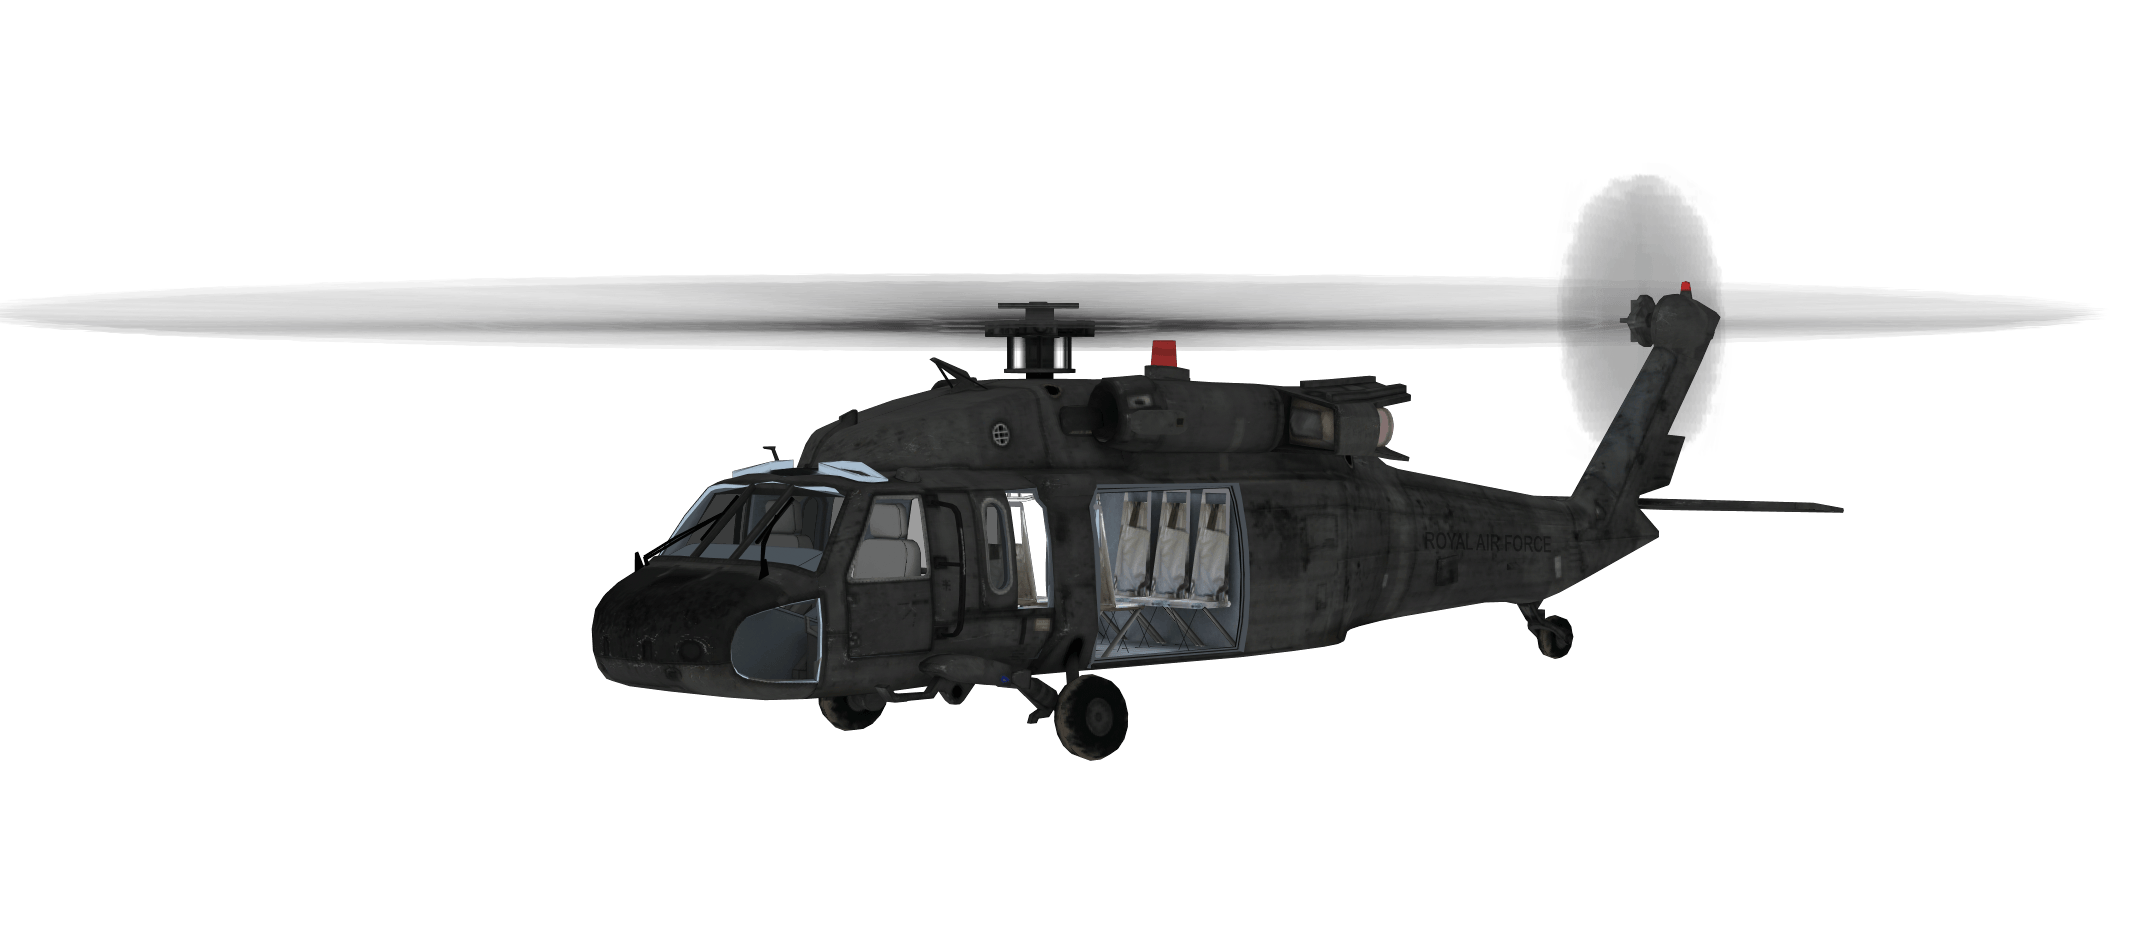 download helicopter png image png image pngimg #19260